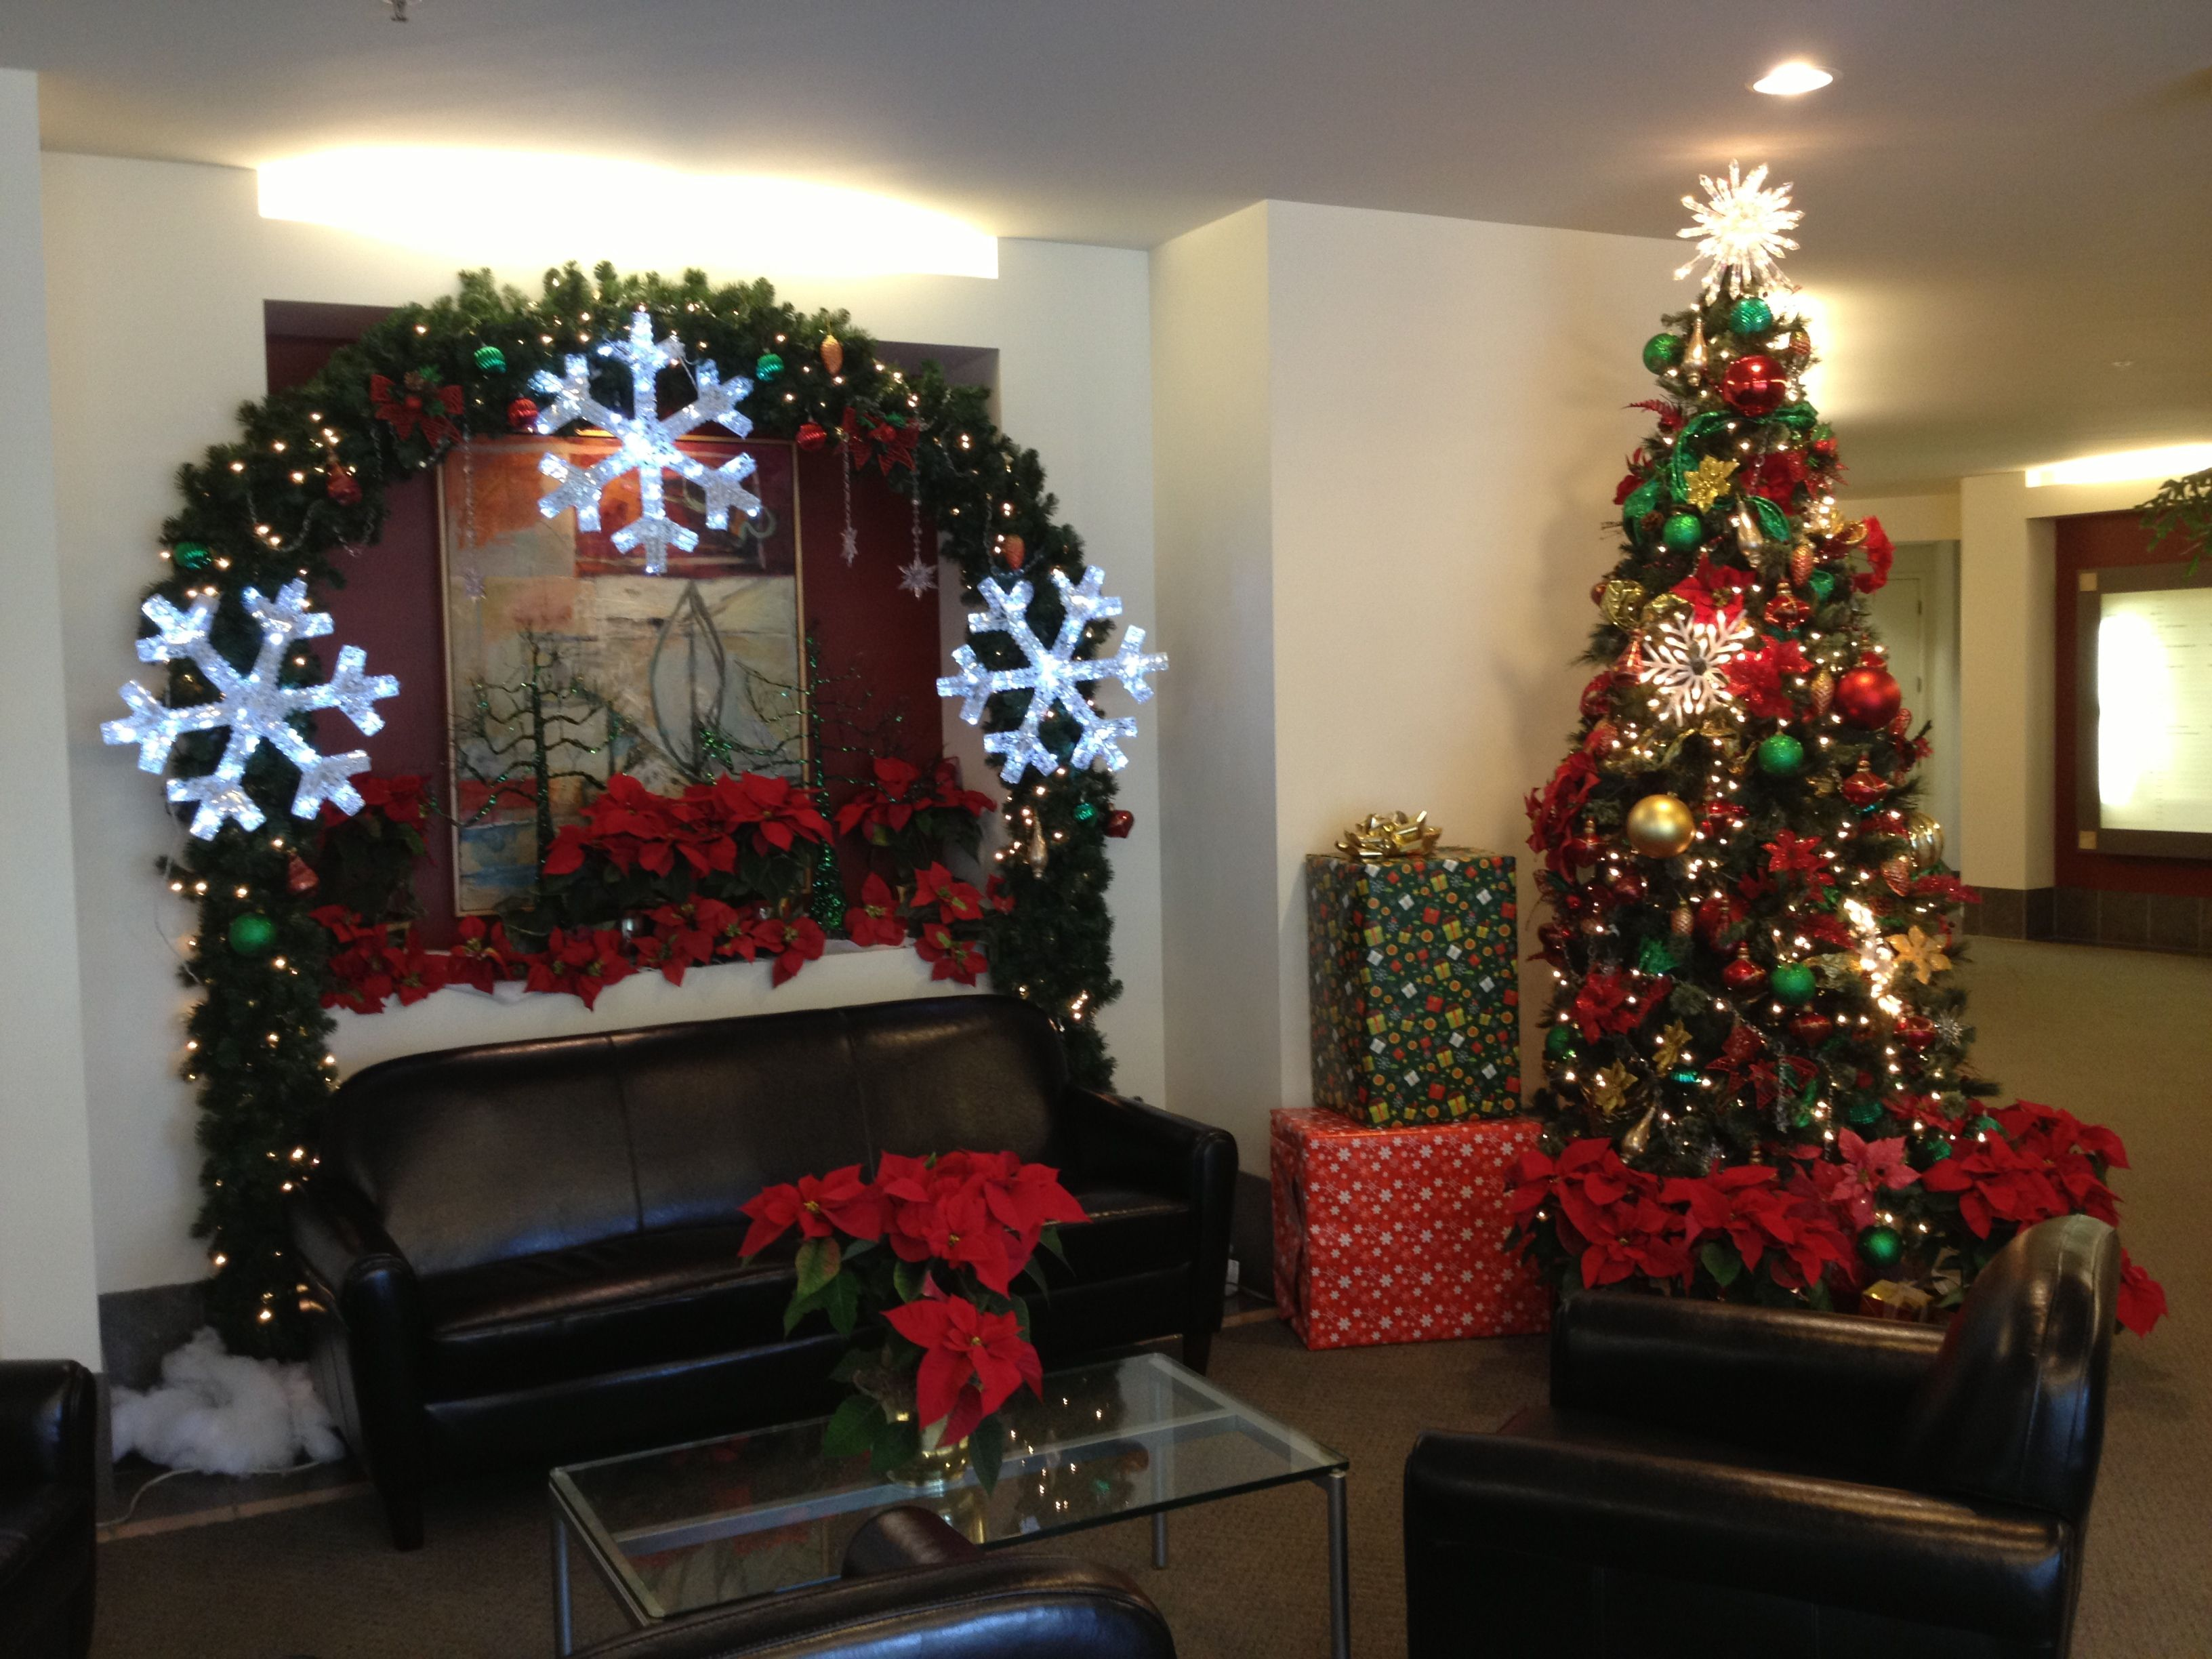 How to decorate my living room for christmas - Christmas Interior Design 1000 Images About Office Holiday Ideas Decorating